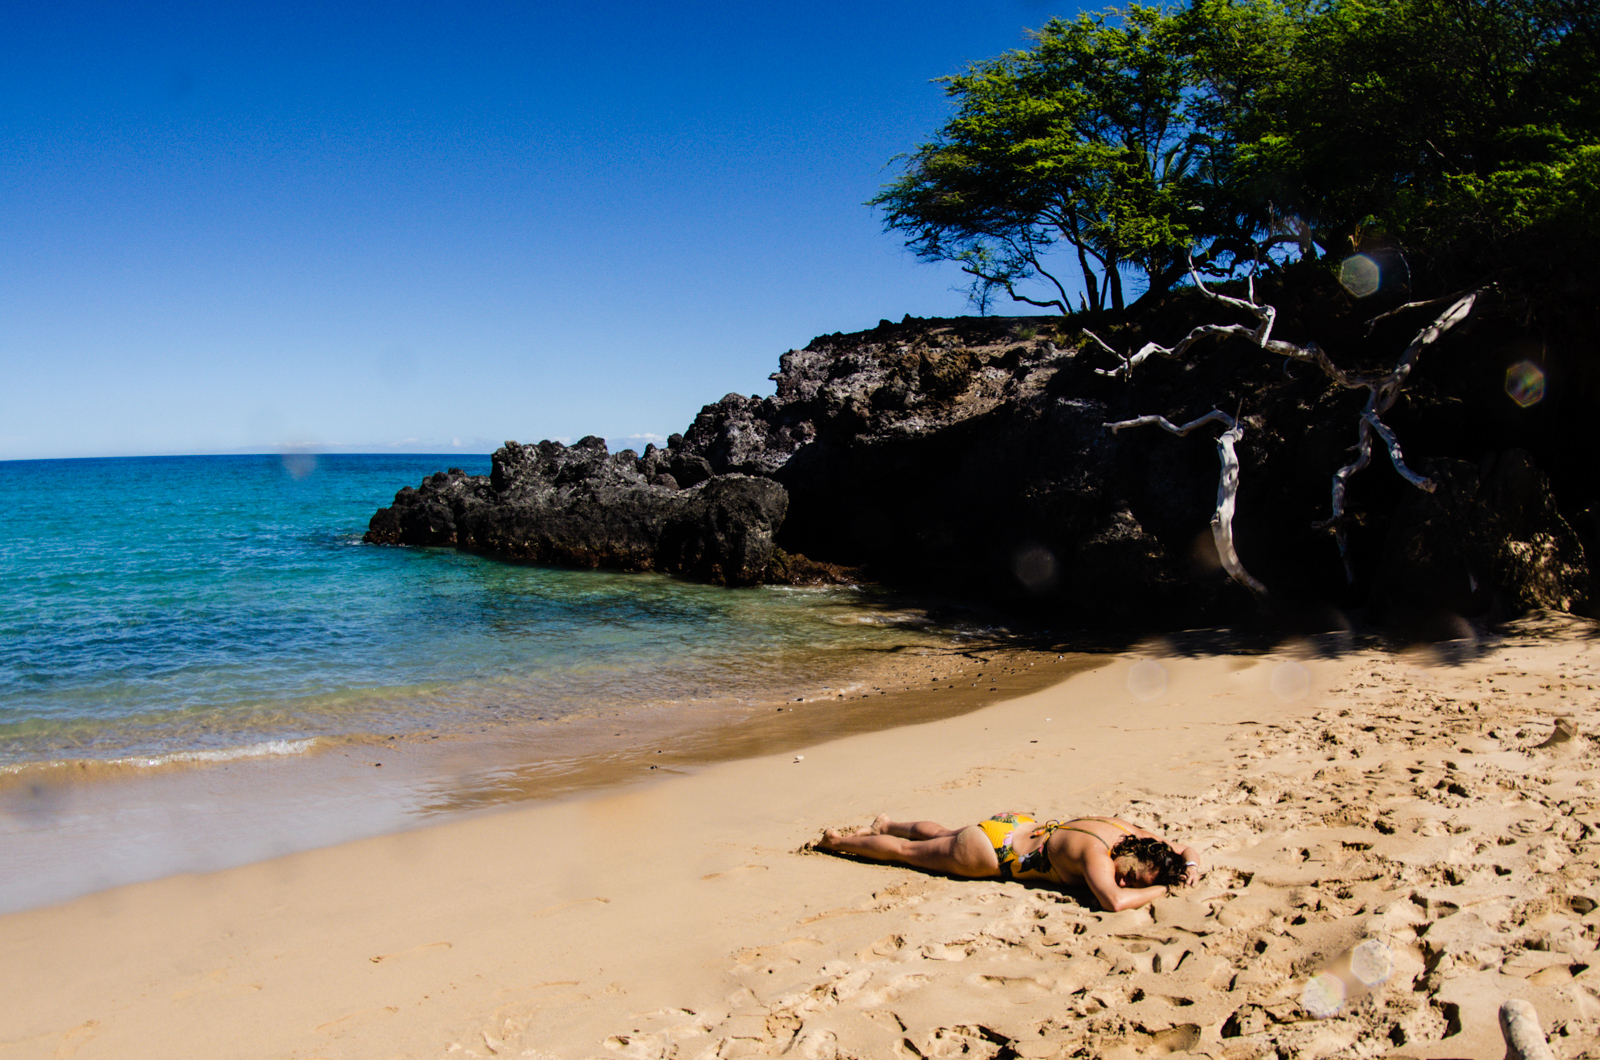 Yafa relaxes in the sand after our beautiful morning swim.